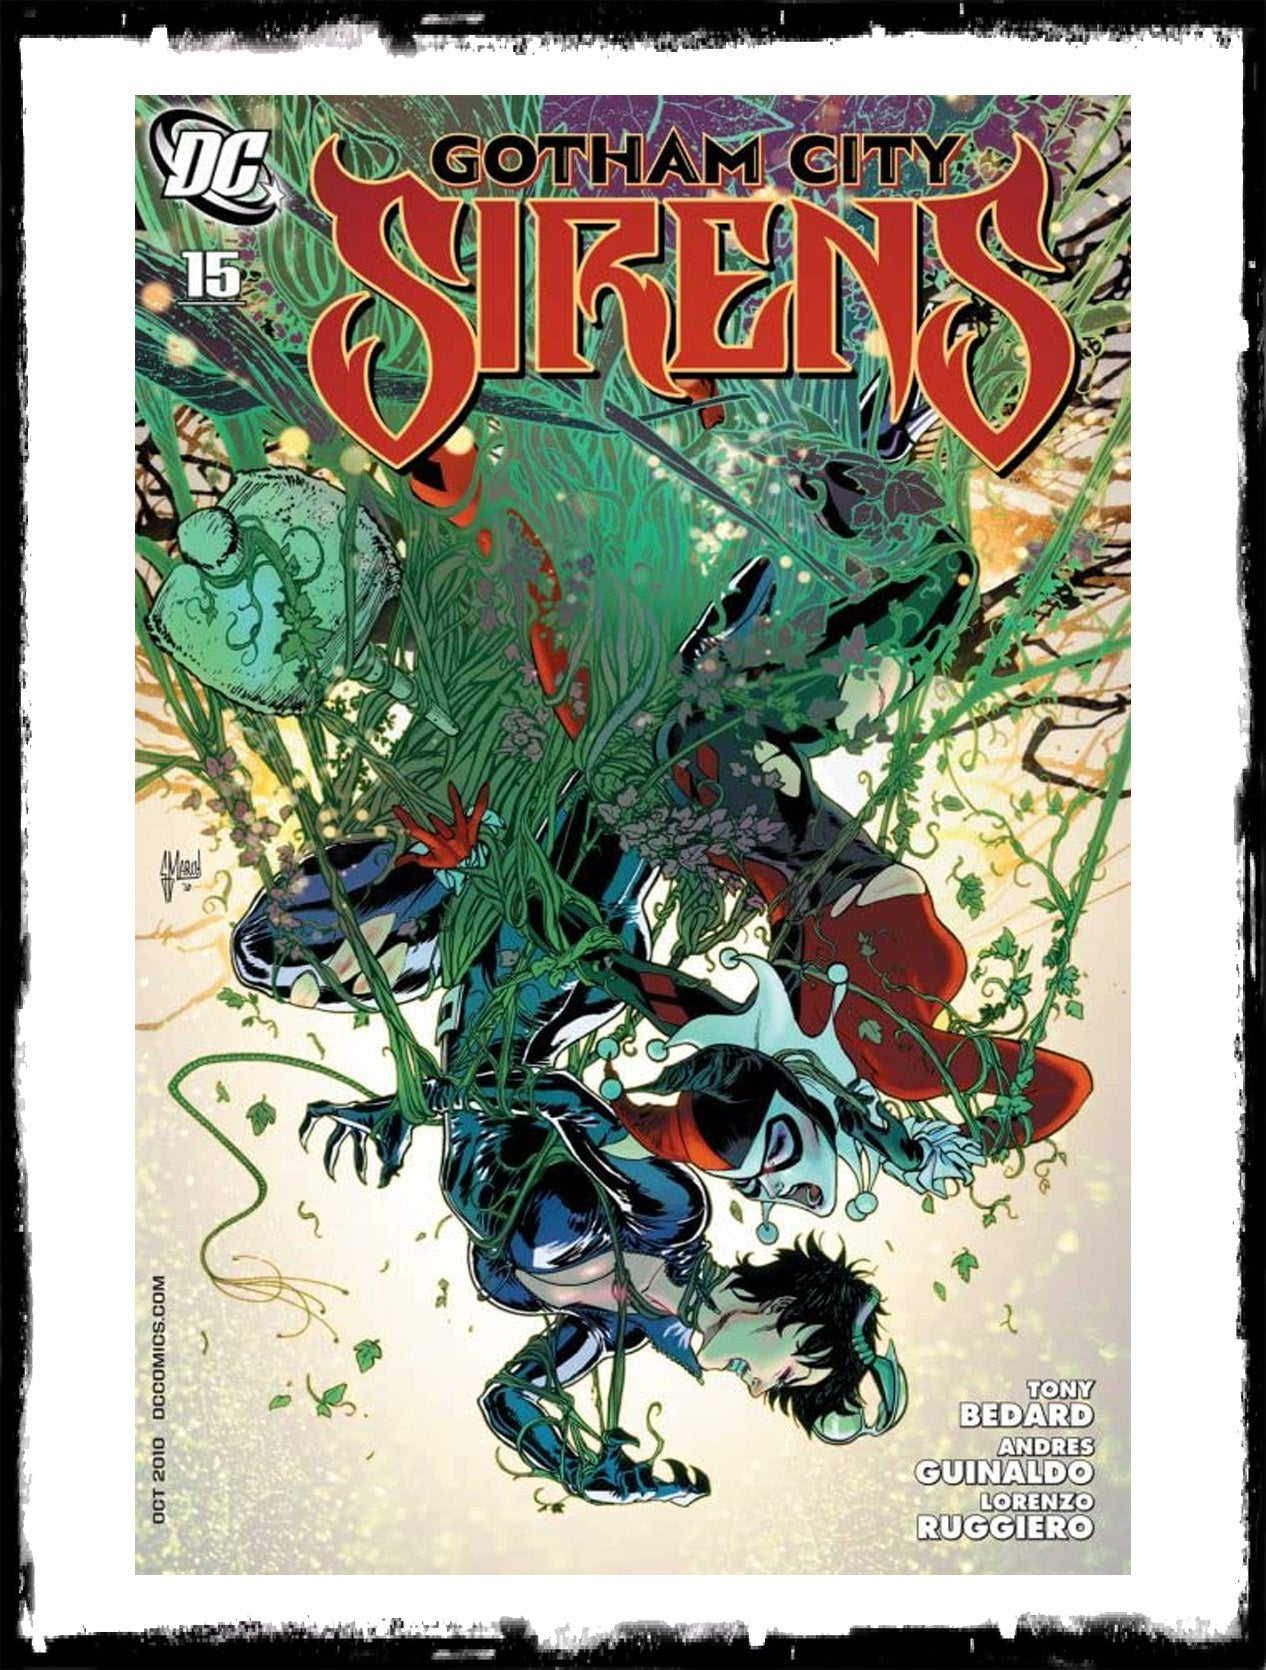 GOTHAM CITY SIRENS - #15 GUILLEM MARCH COVER (2010 - VF+/NM)